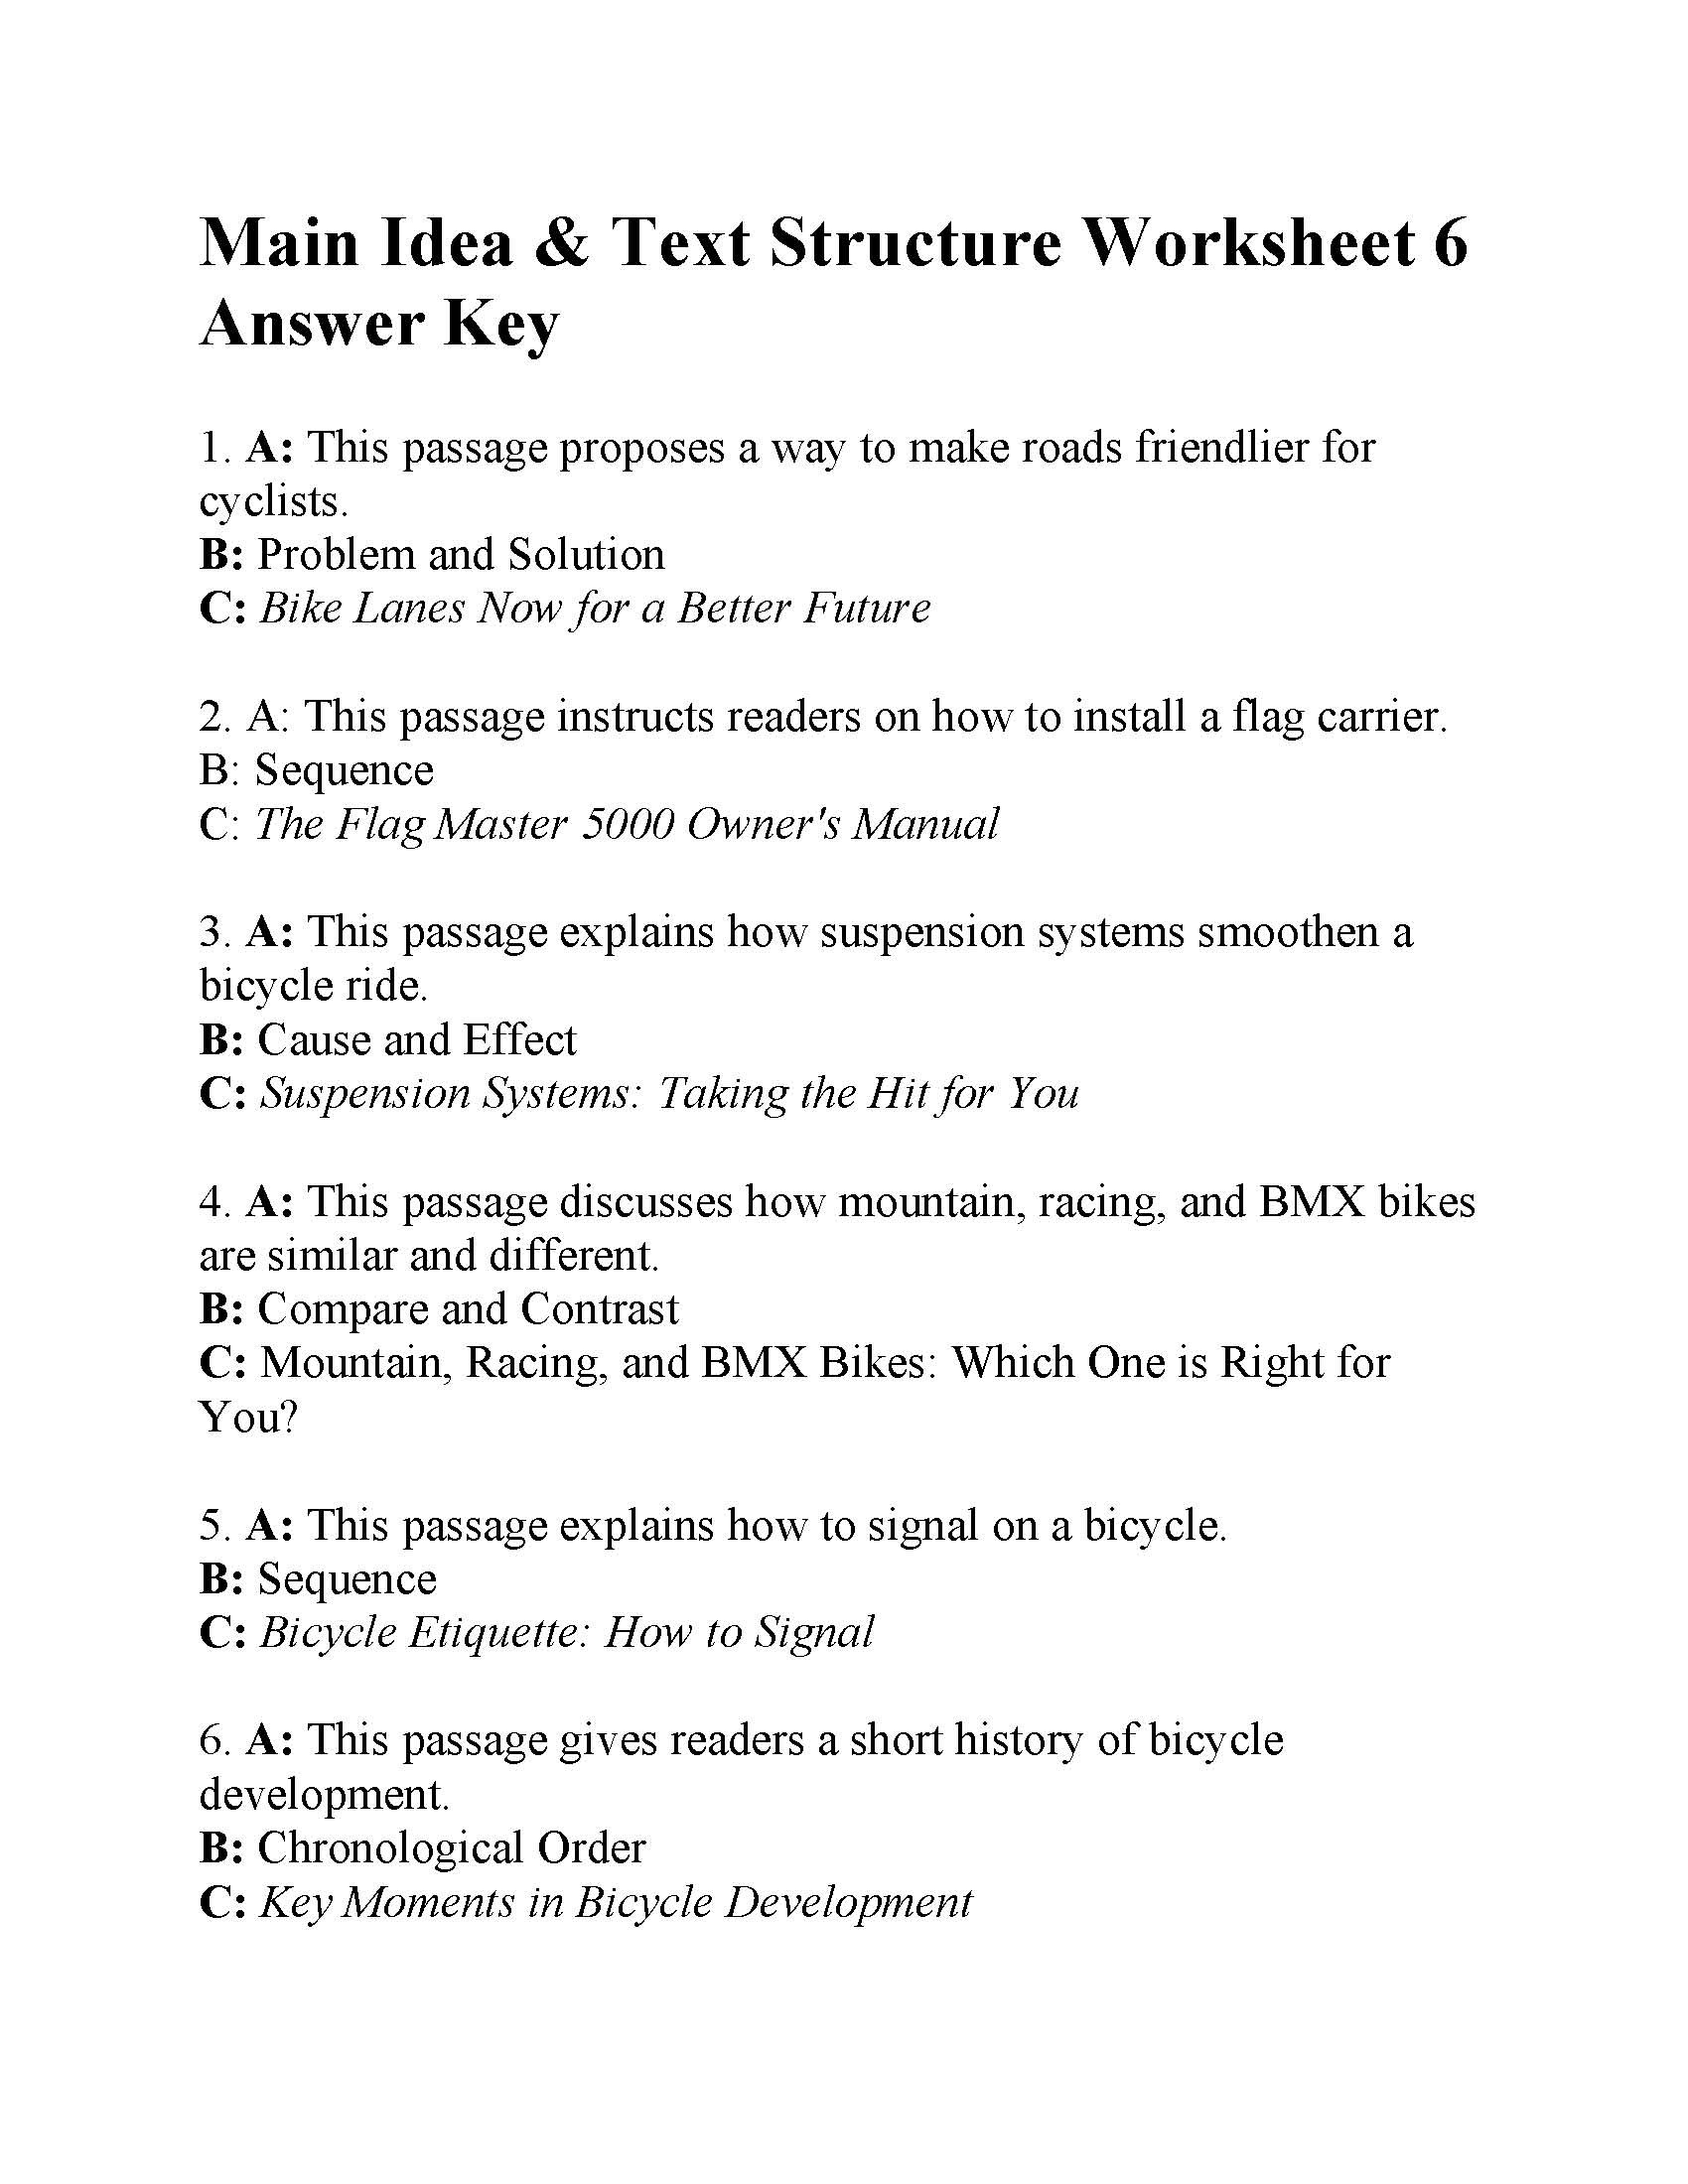 Text Structure Worksheets 4th Grade Main Idea and Text Structure Worksheet Answers Ereading